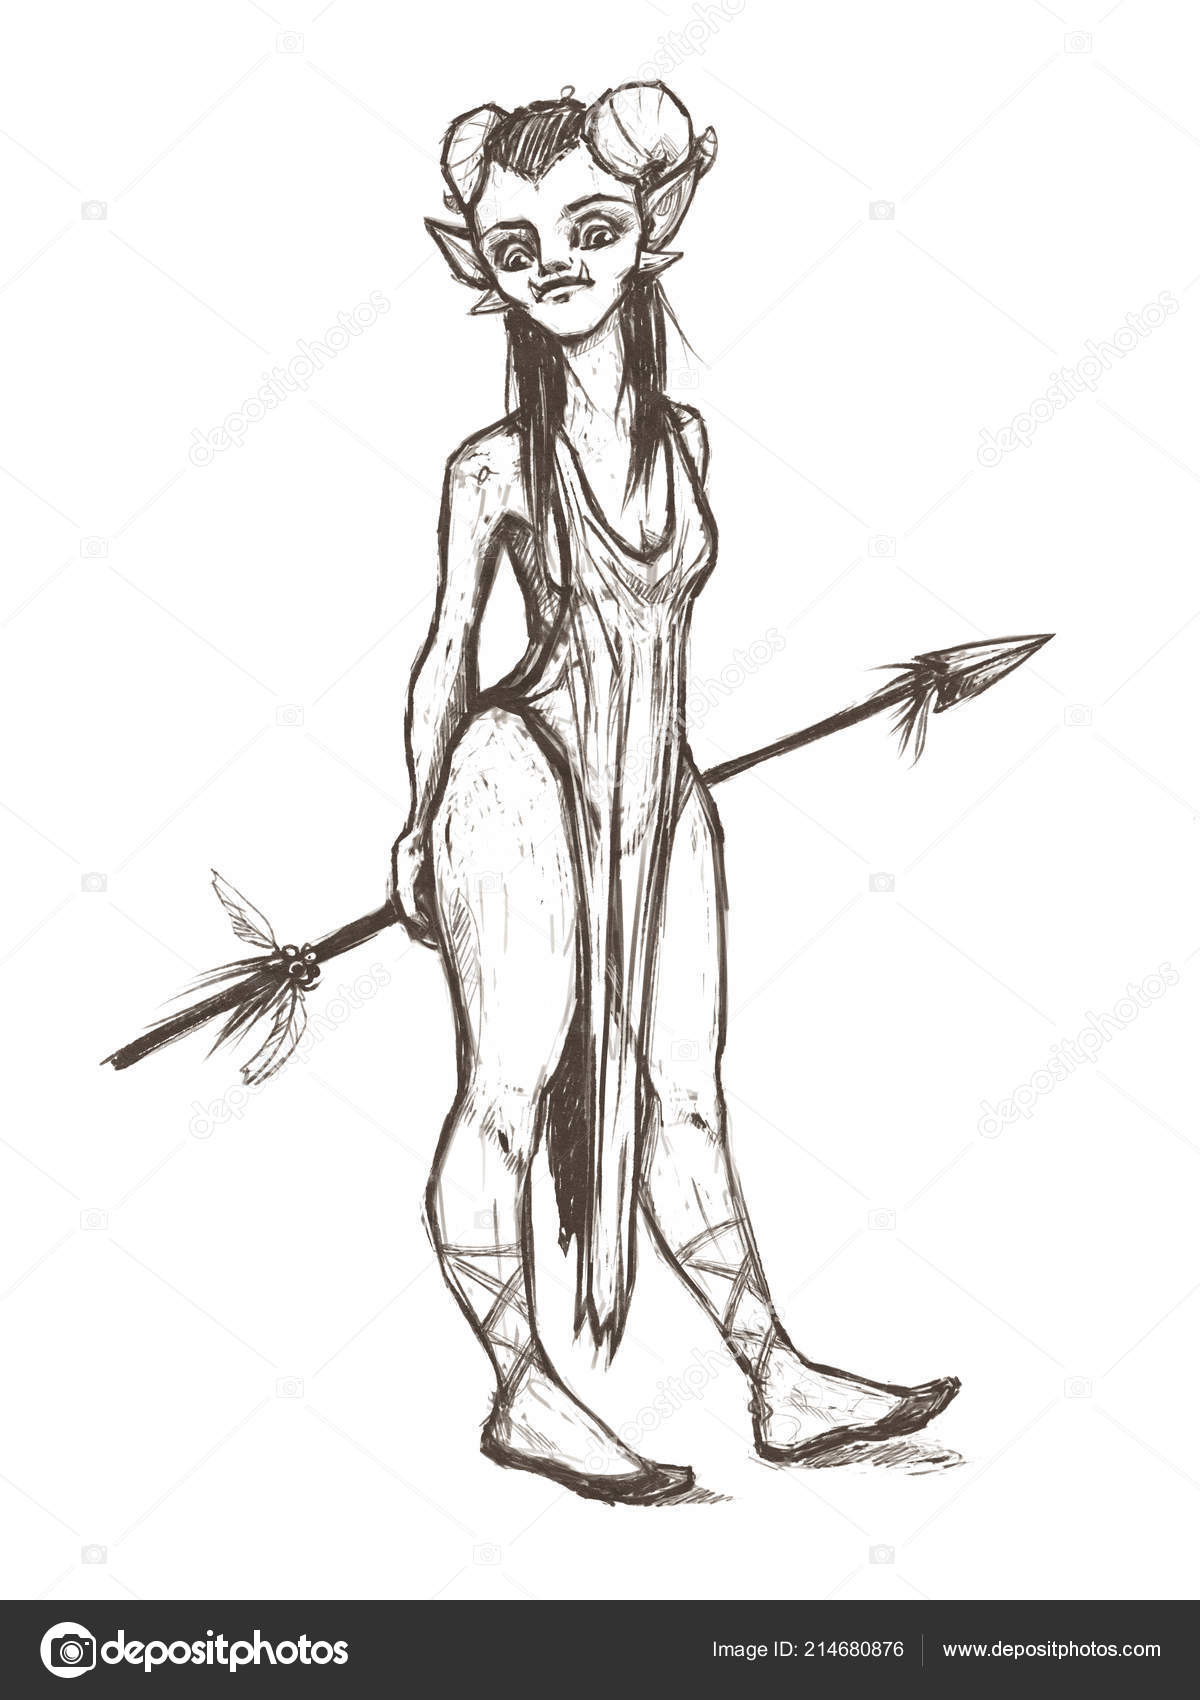 Orc princess girl horns spear pencil illustration fantasy creature stock photo